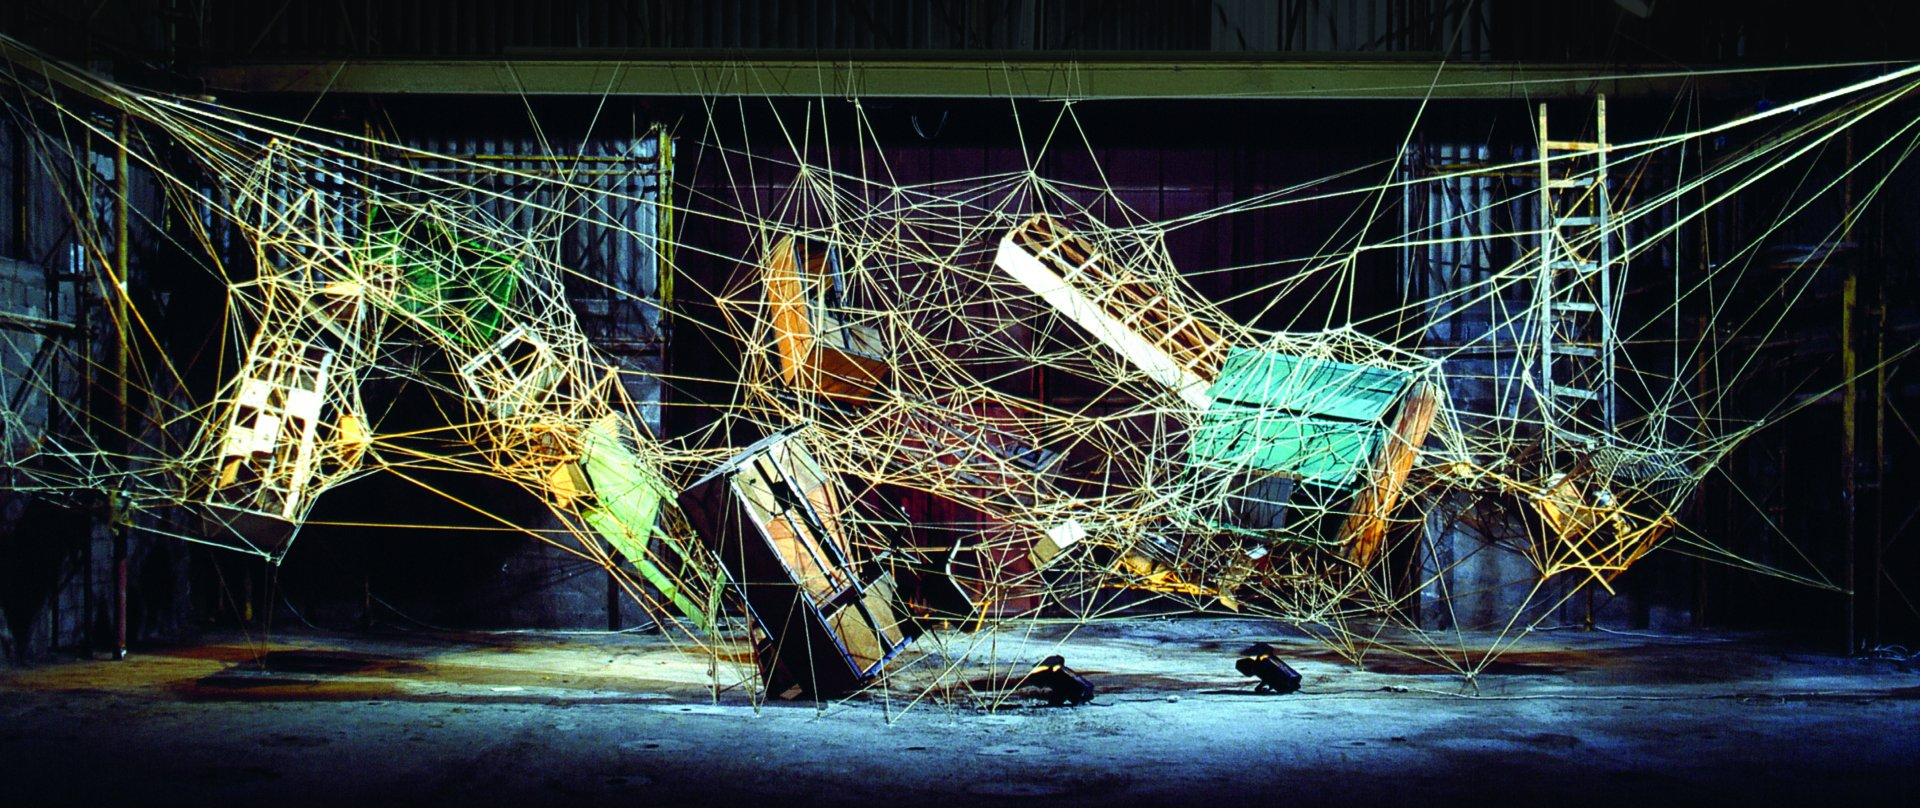 Digestive Tract, 2000. Ropes and objects, 20x8x6m